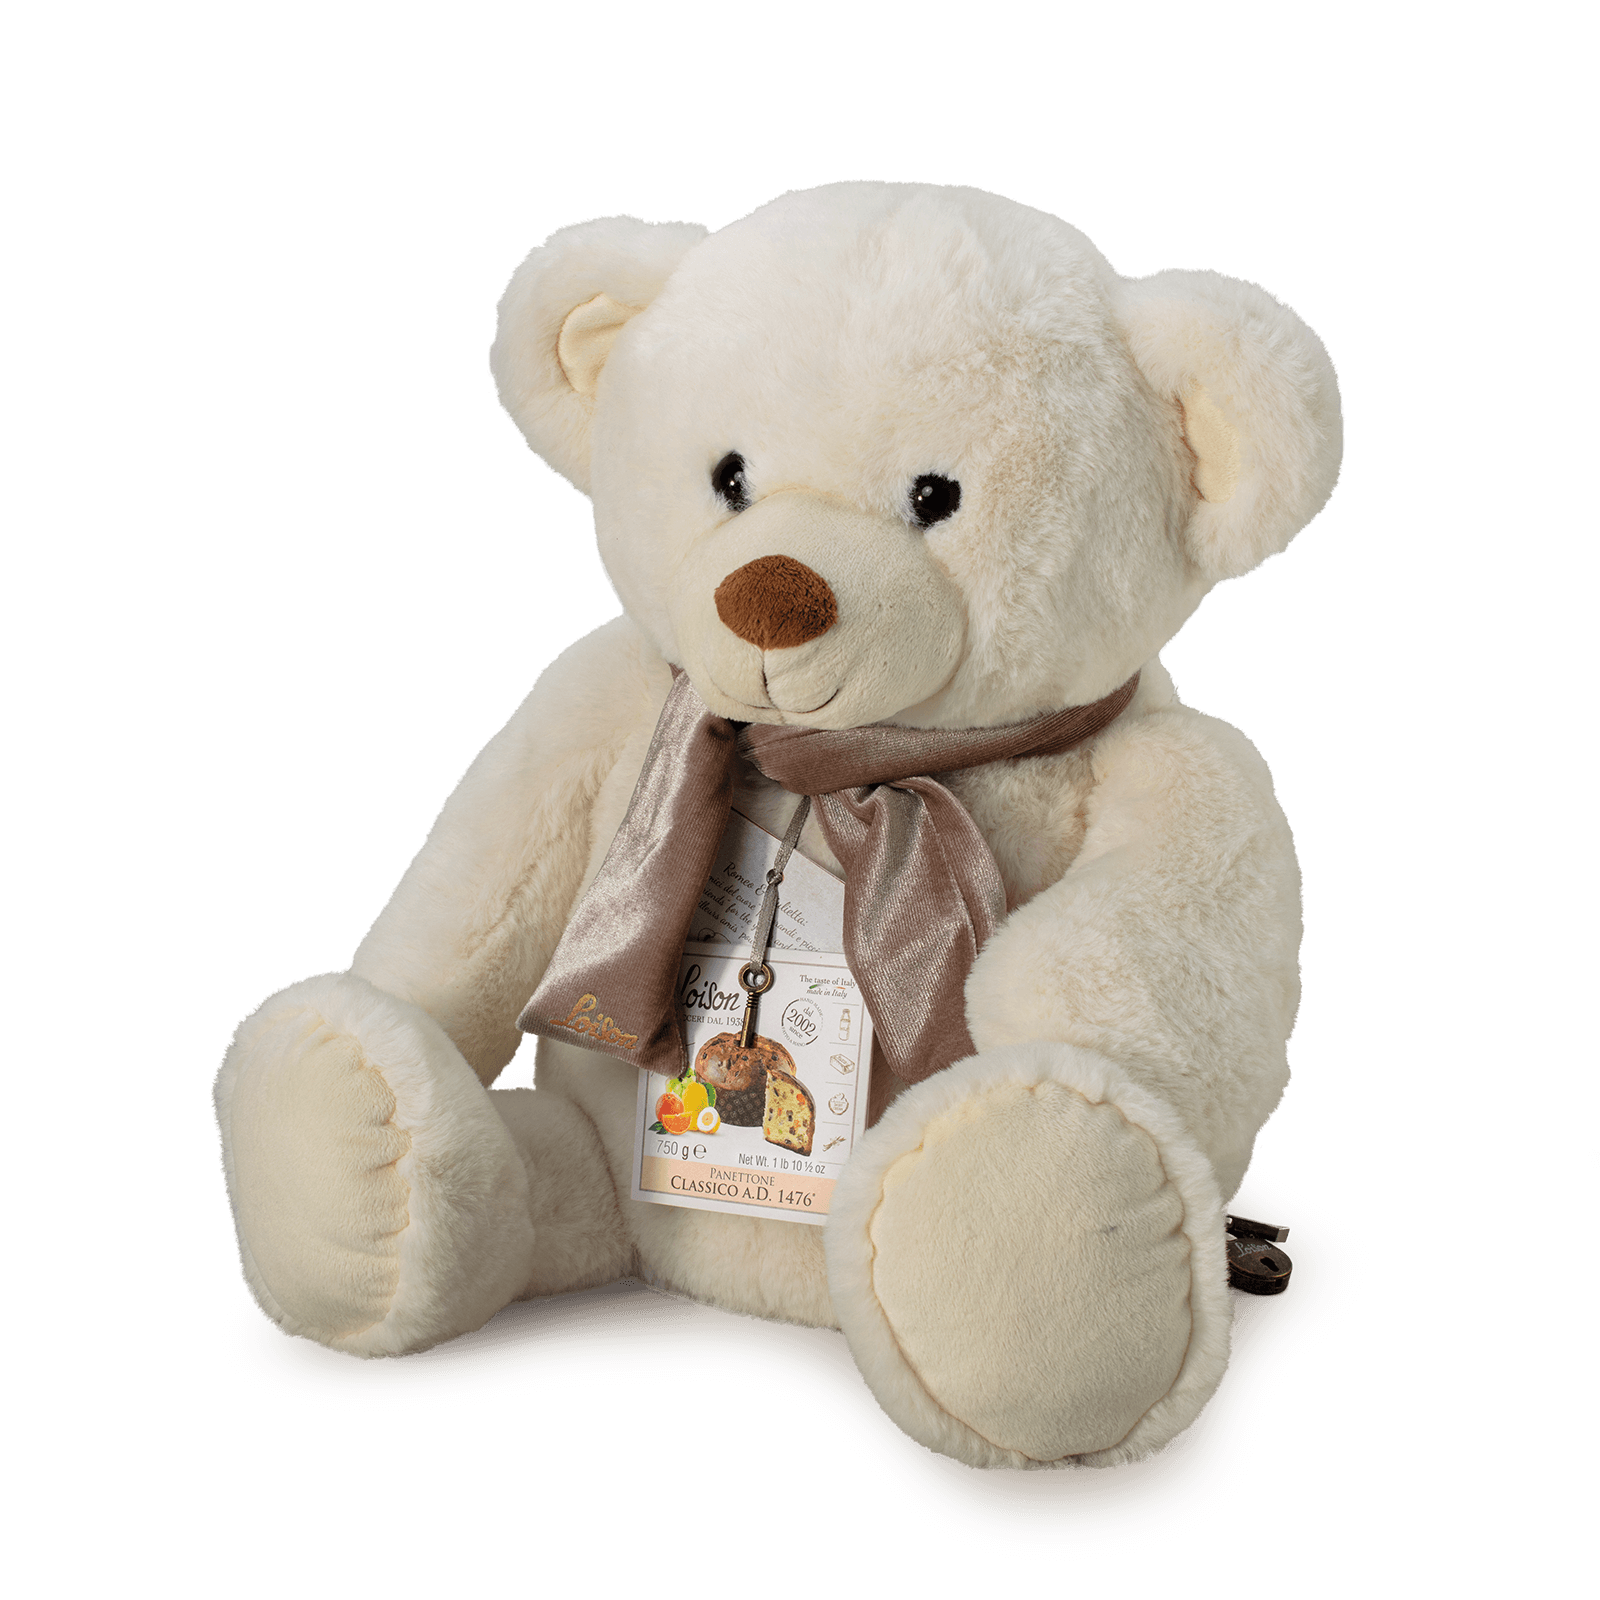 Classic Panettone in a gift box Teddy Bear Loison